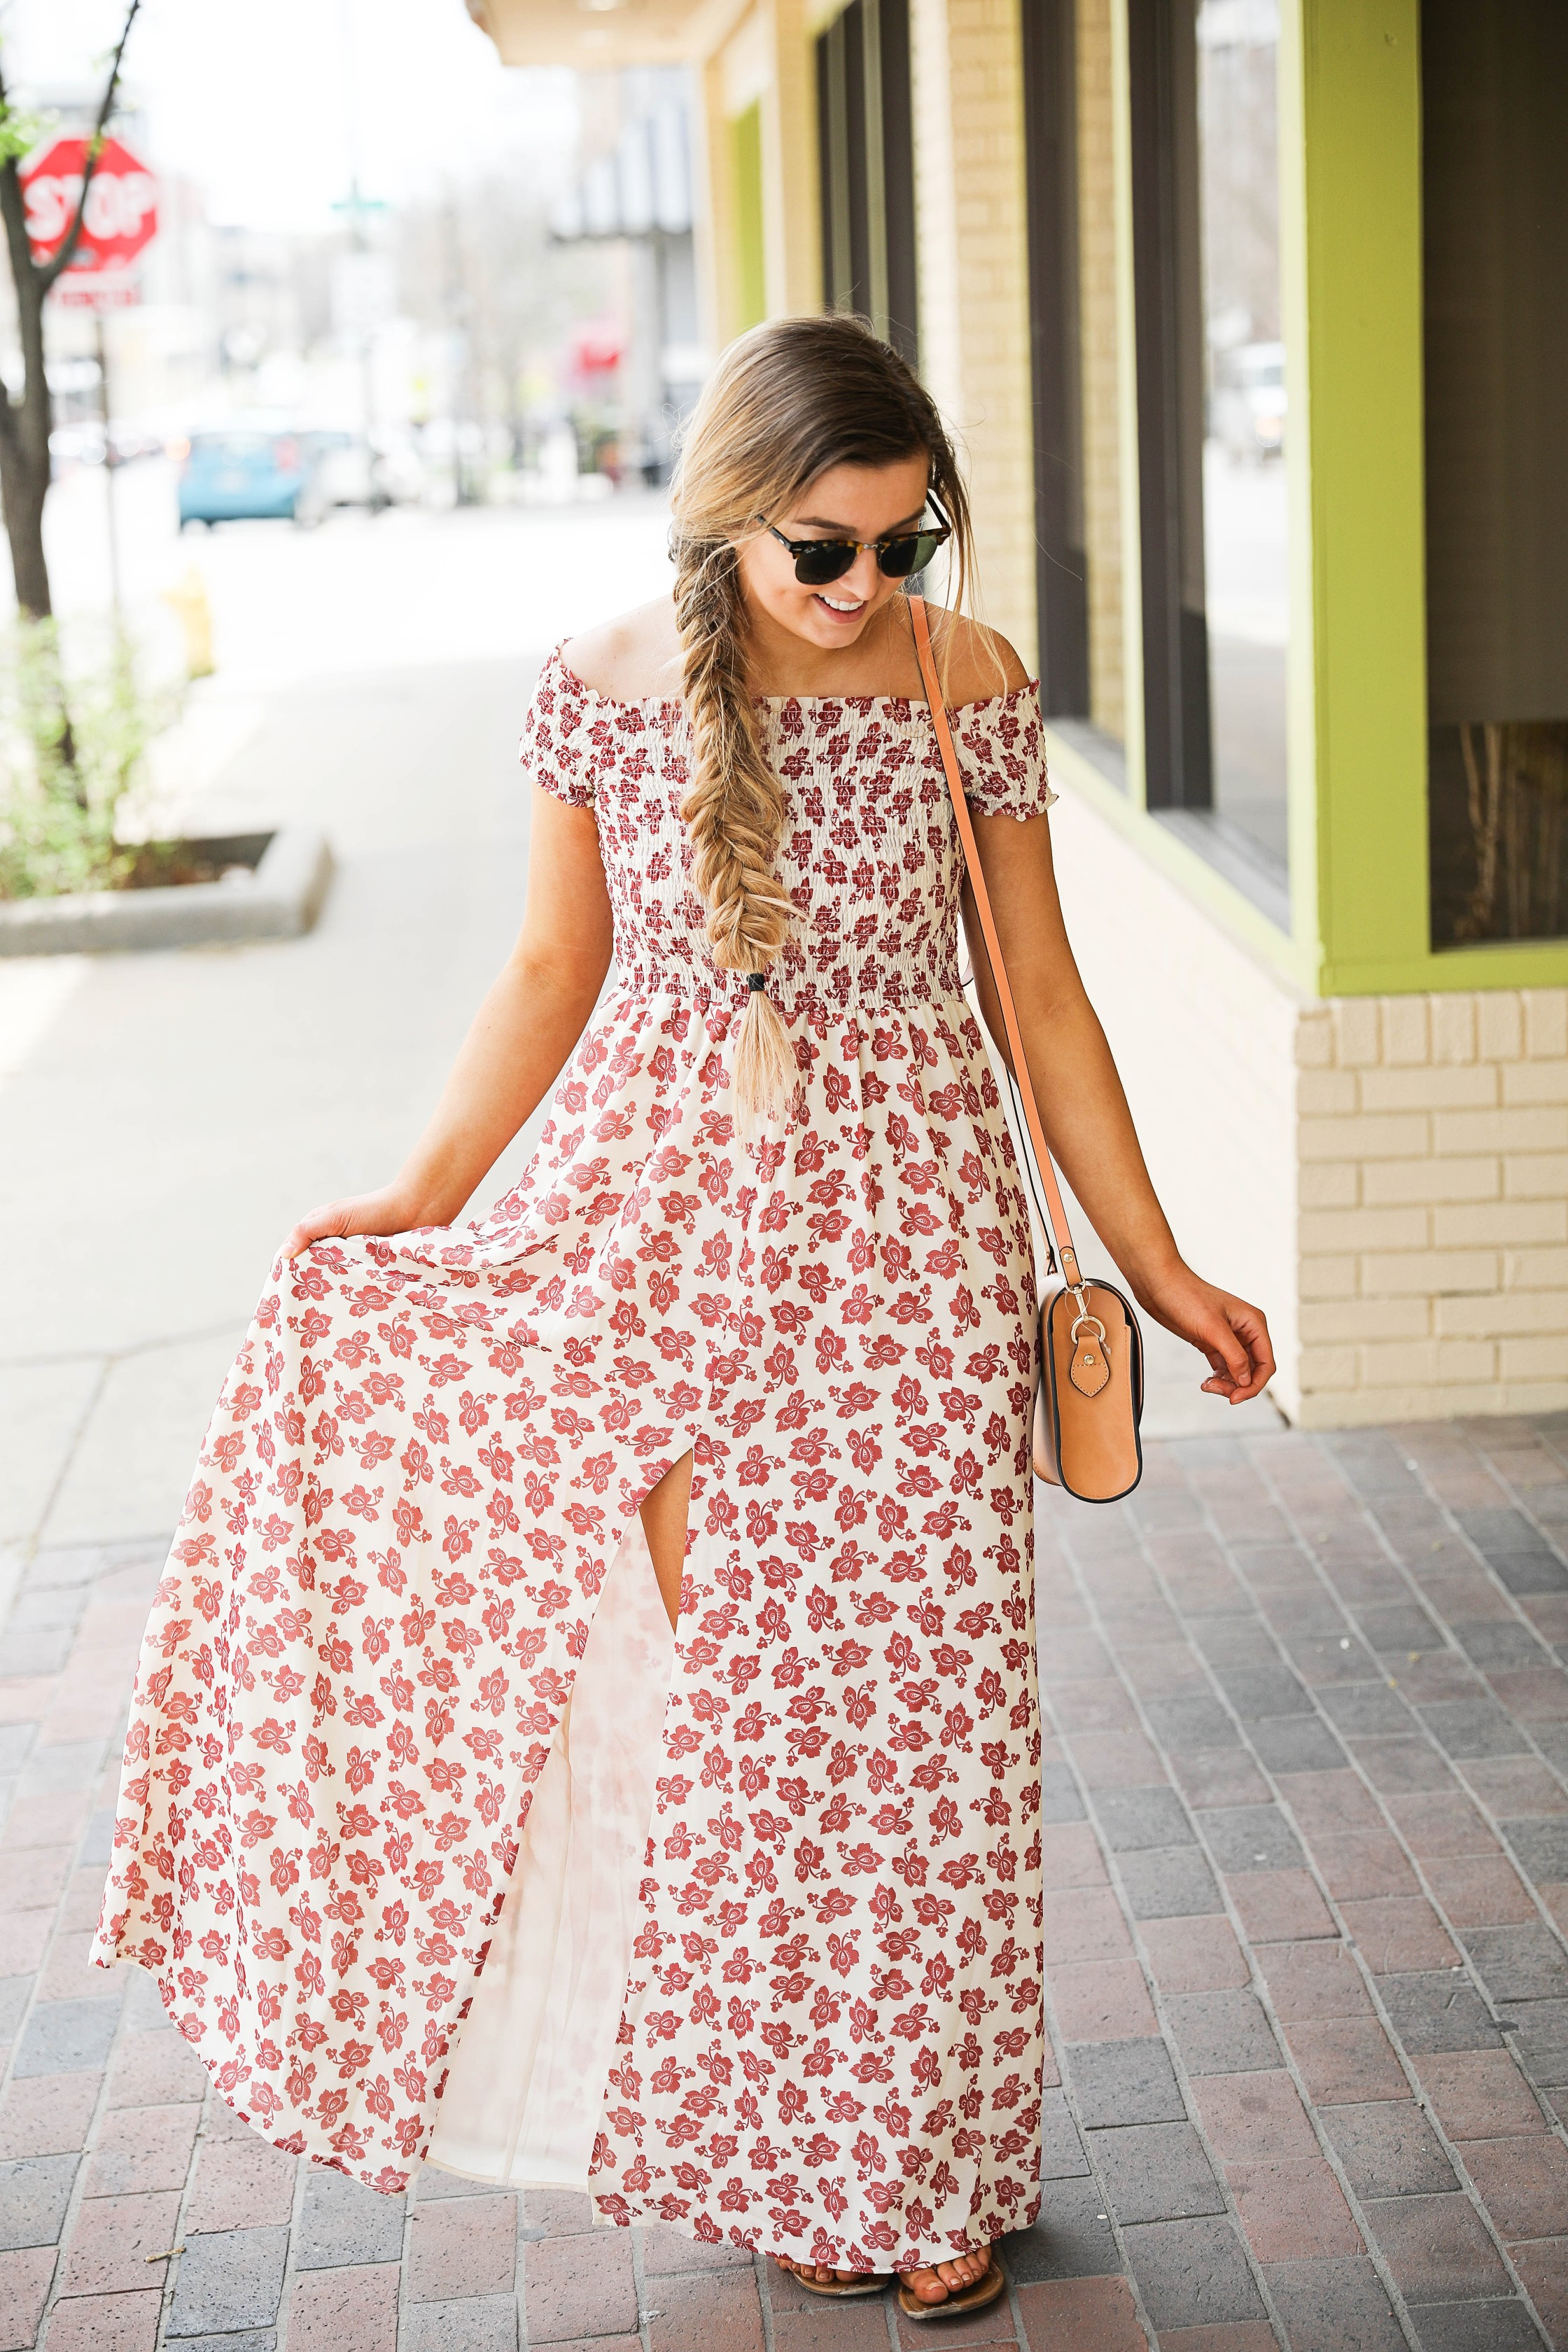 The prettiest floral off the shoulder dress for spring and summer! I am a sucker for a cute floral dress. I love the slit on the front of this dress and I paired it with a brown leather bag and sunglasses! By Lauren Lindmark on daily dose of charm dailydoseofcharm.com